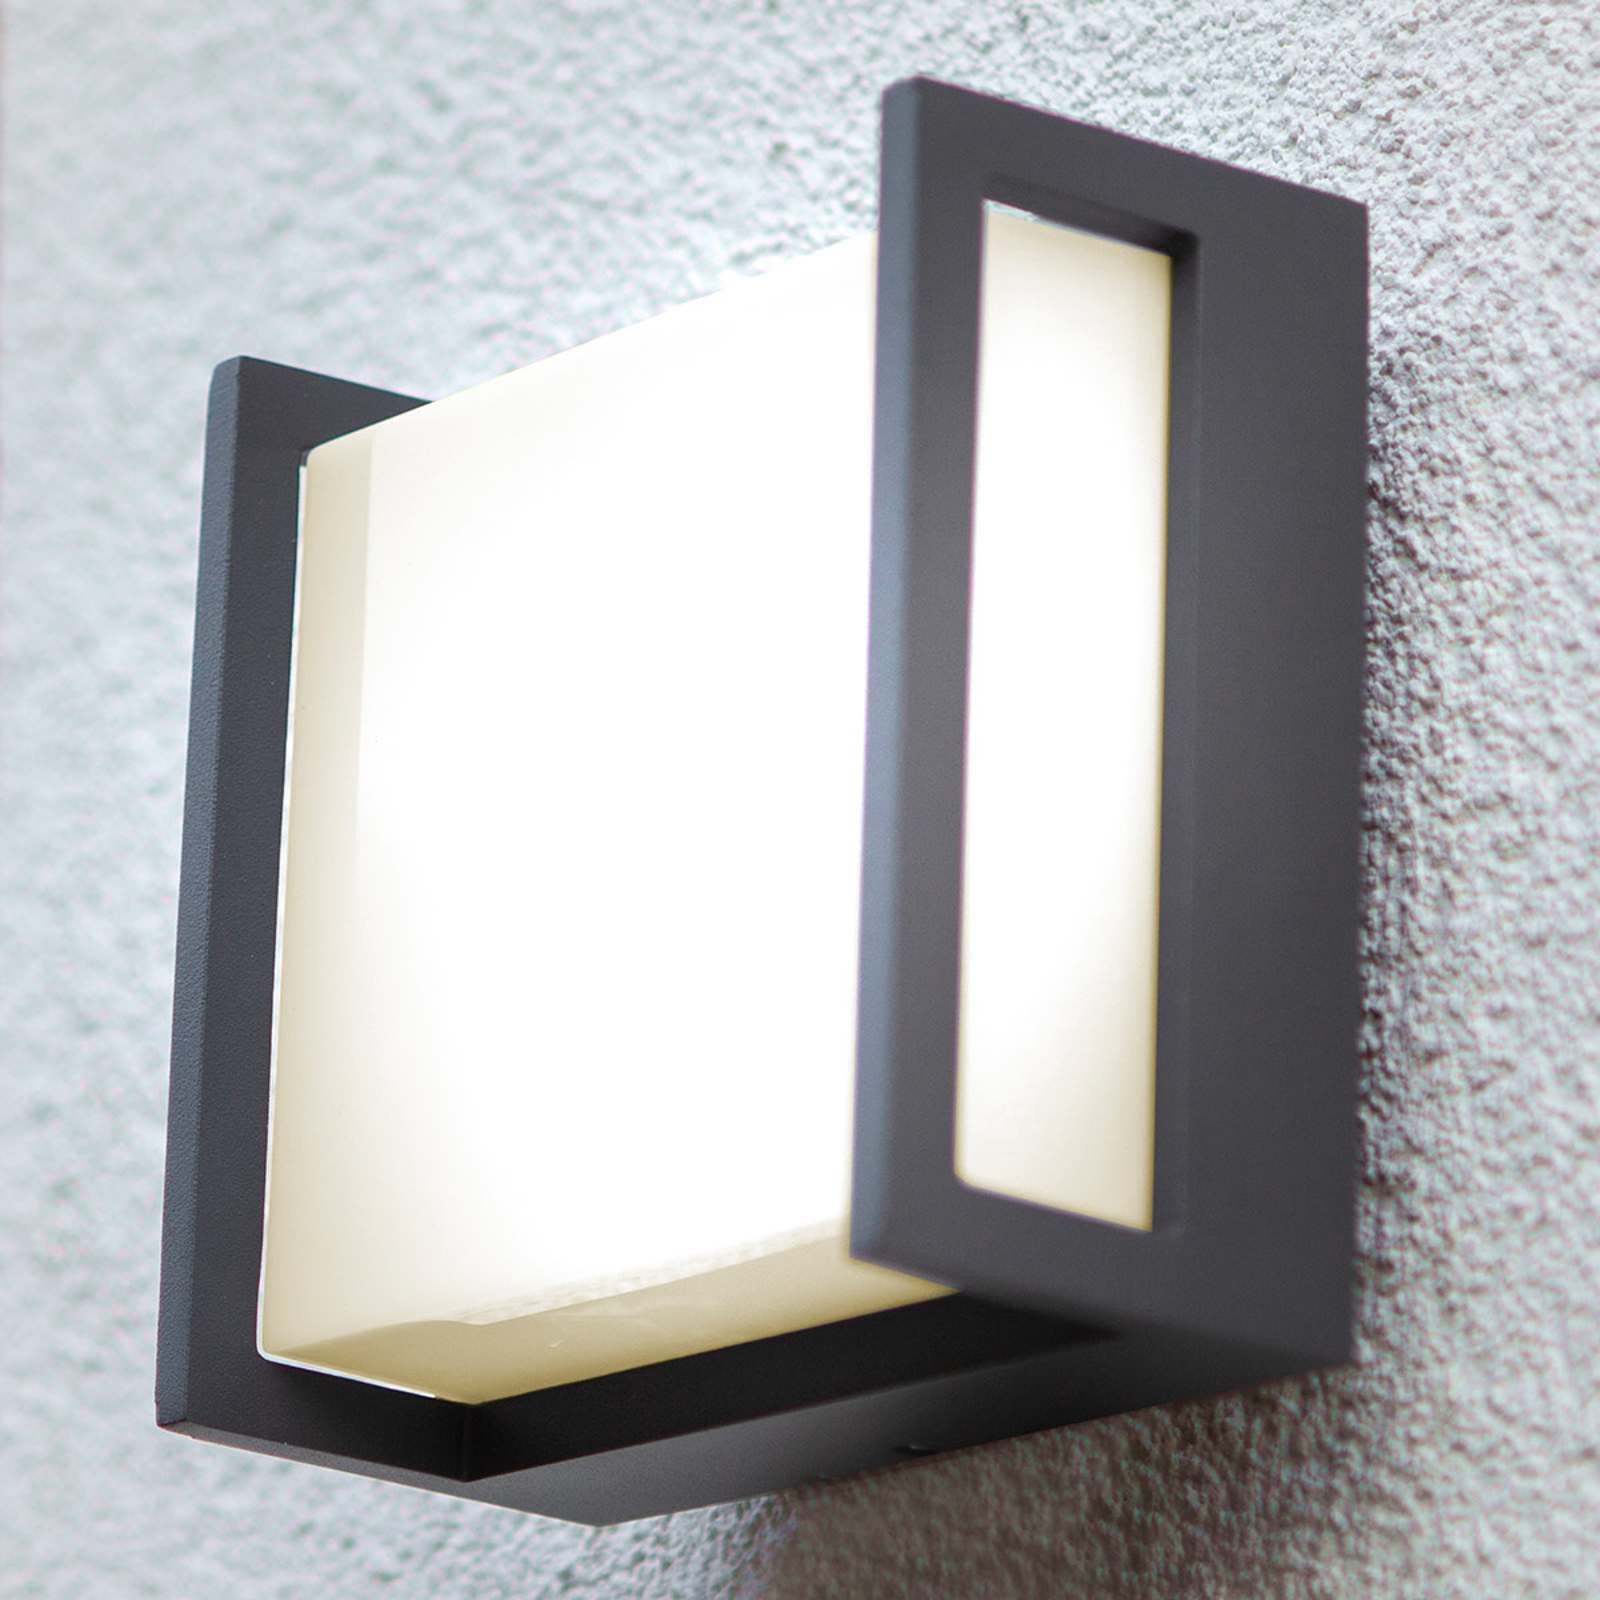 Qubo LED outdoor wall light, 14 cm x 14 cm_3006721_1